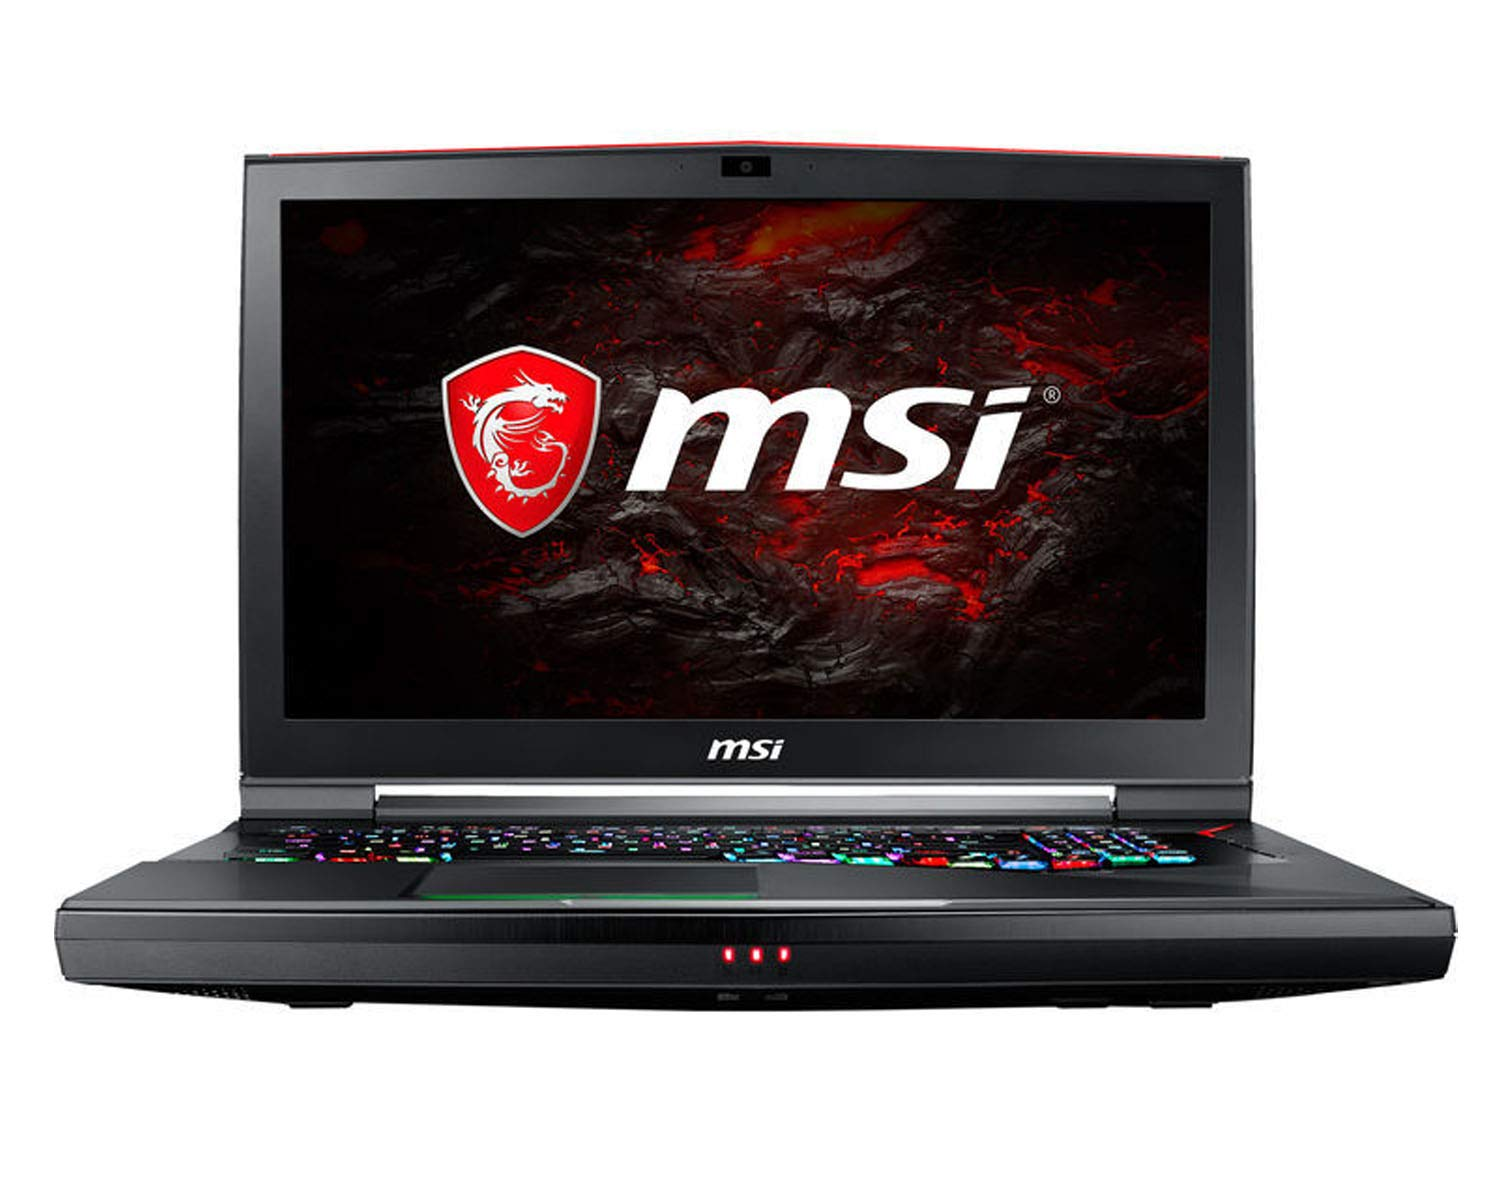 全国宅配無料 MSI 3ms, GT75 SSD, Keyboard, TITAN-015 Gaming and Business Laptop (Intel 8th Gen i7-8750HK 6-Core, 16GB RAM, 1TB HDD + 512GB Sata SSD, 17.3